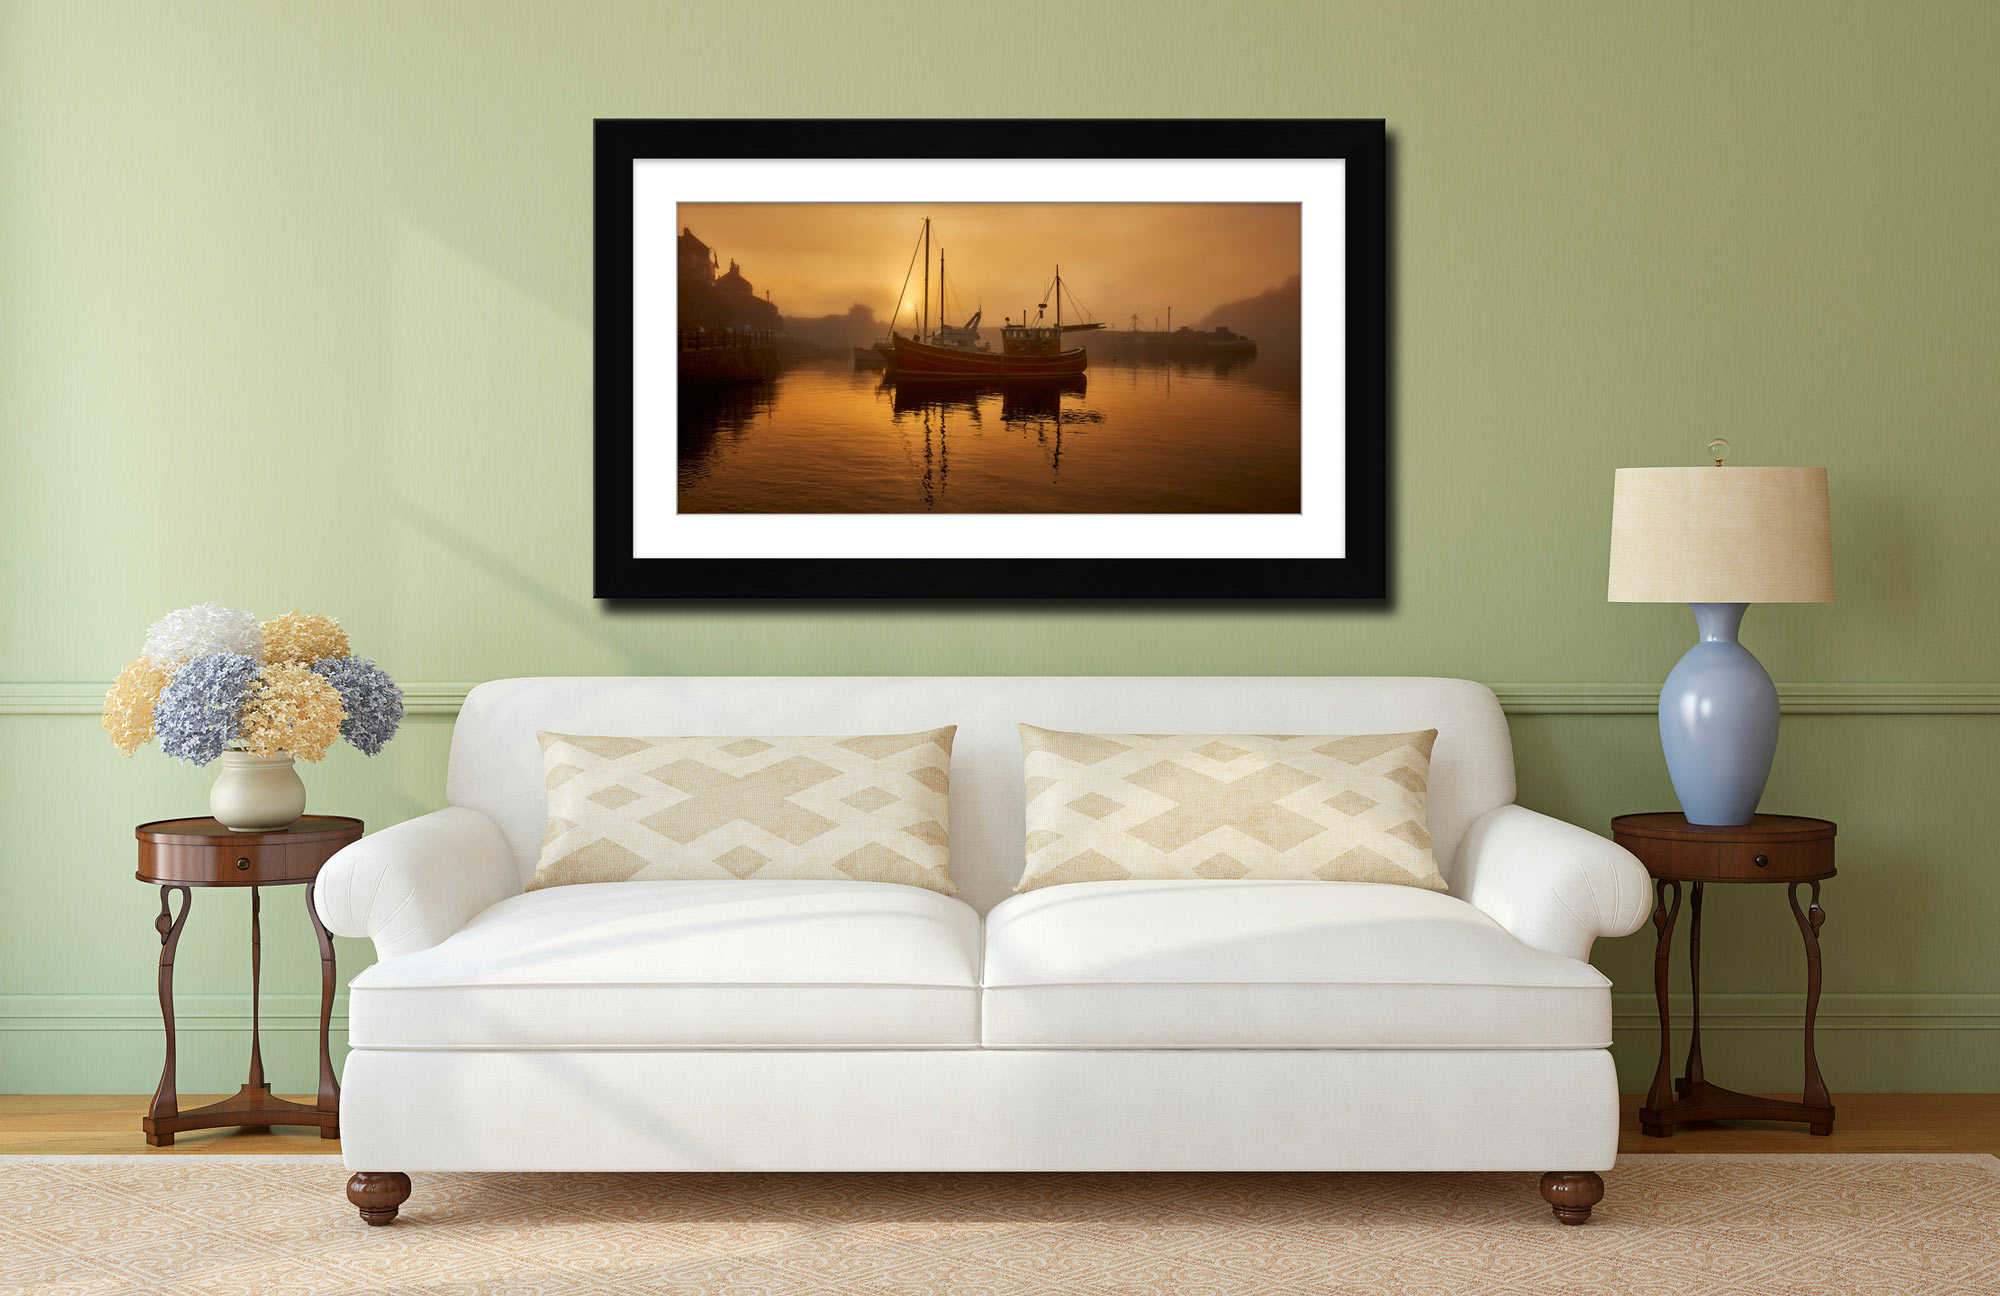 Misty Mevagissy Harbour - Framed Print with Mount on Wall